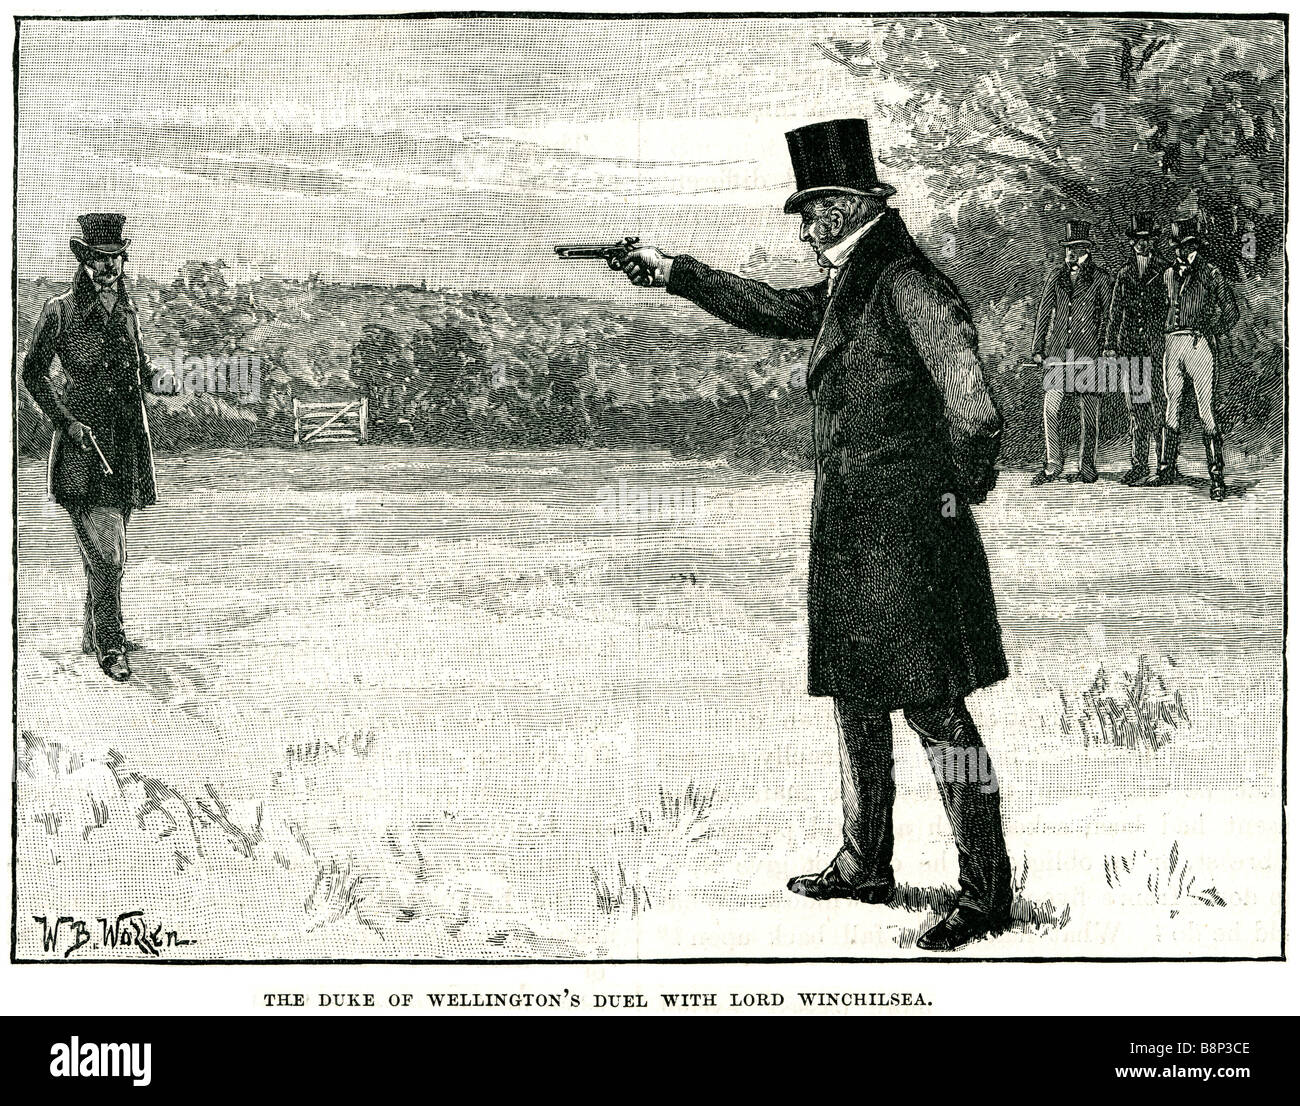 duke of wellington duel with lord winchilsea 1829 challenging Battersea fields - Stock Image